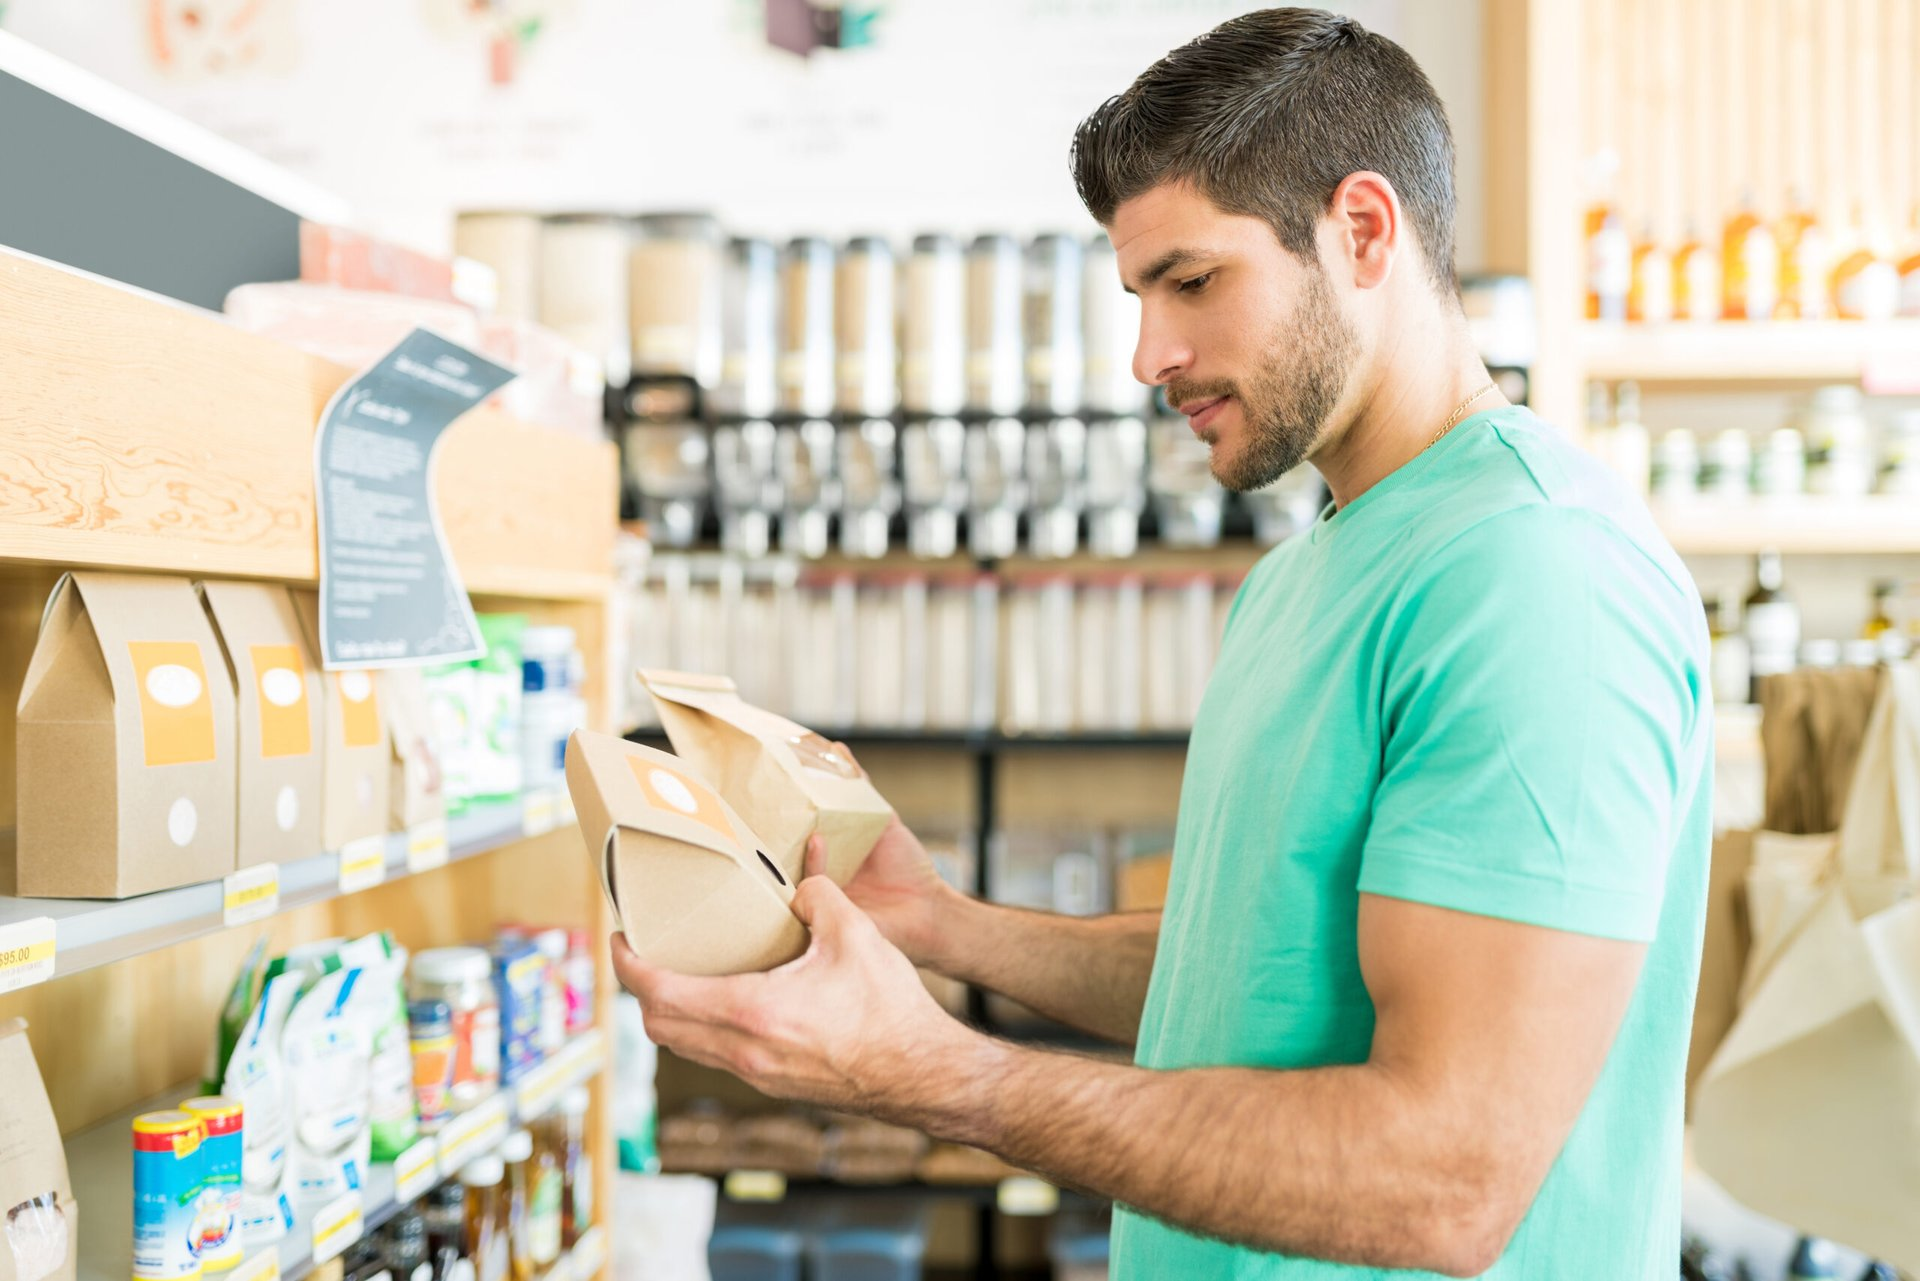 Shopper comparing products at the grocery store